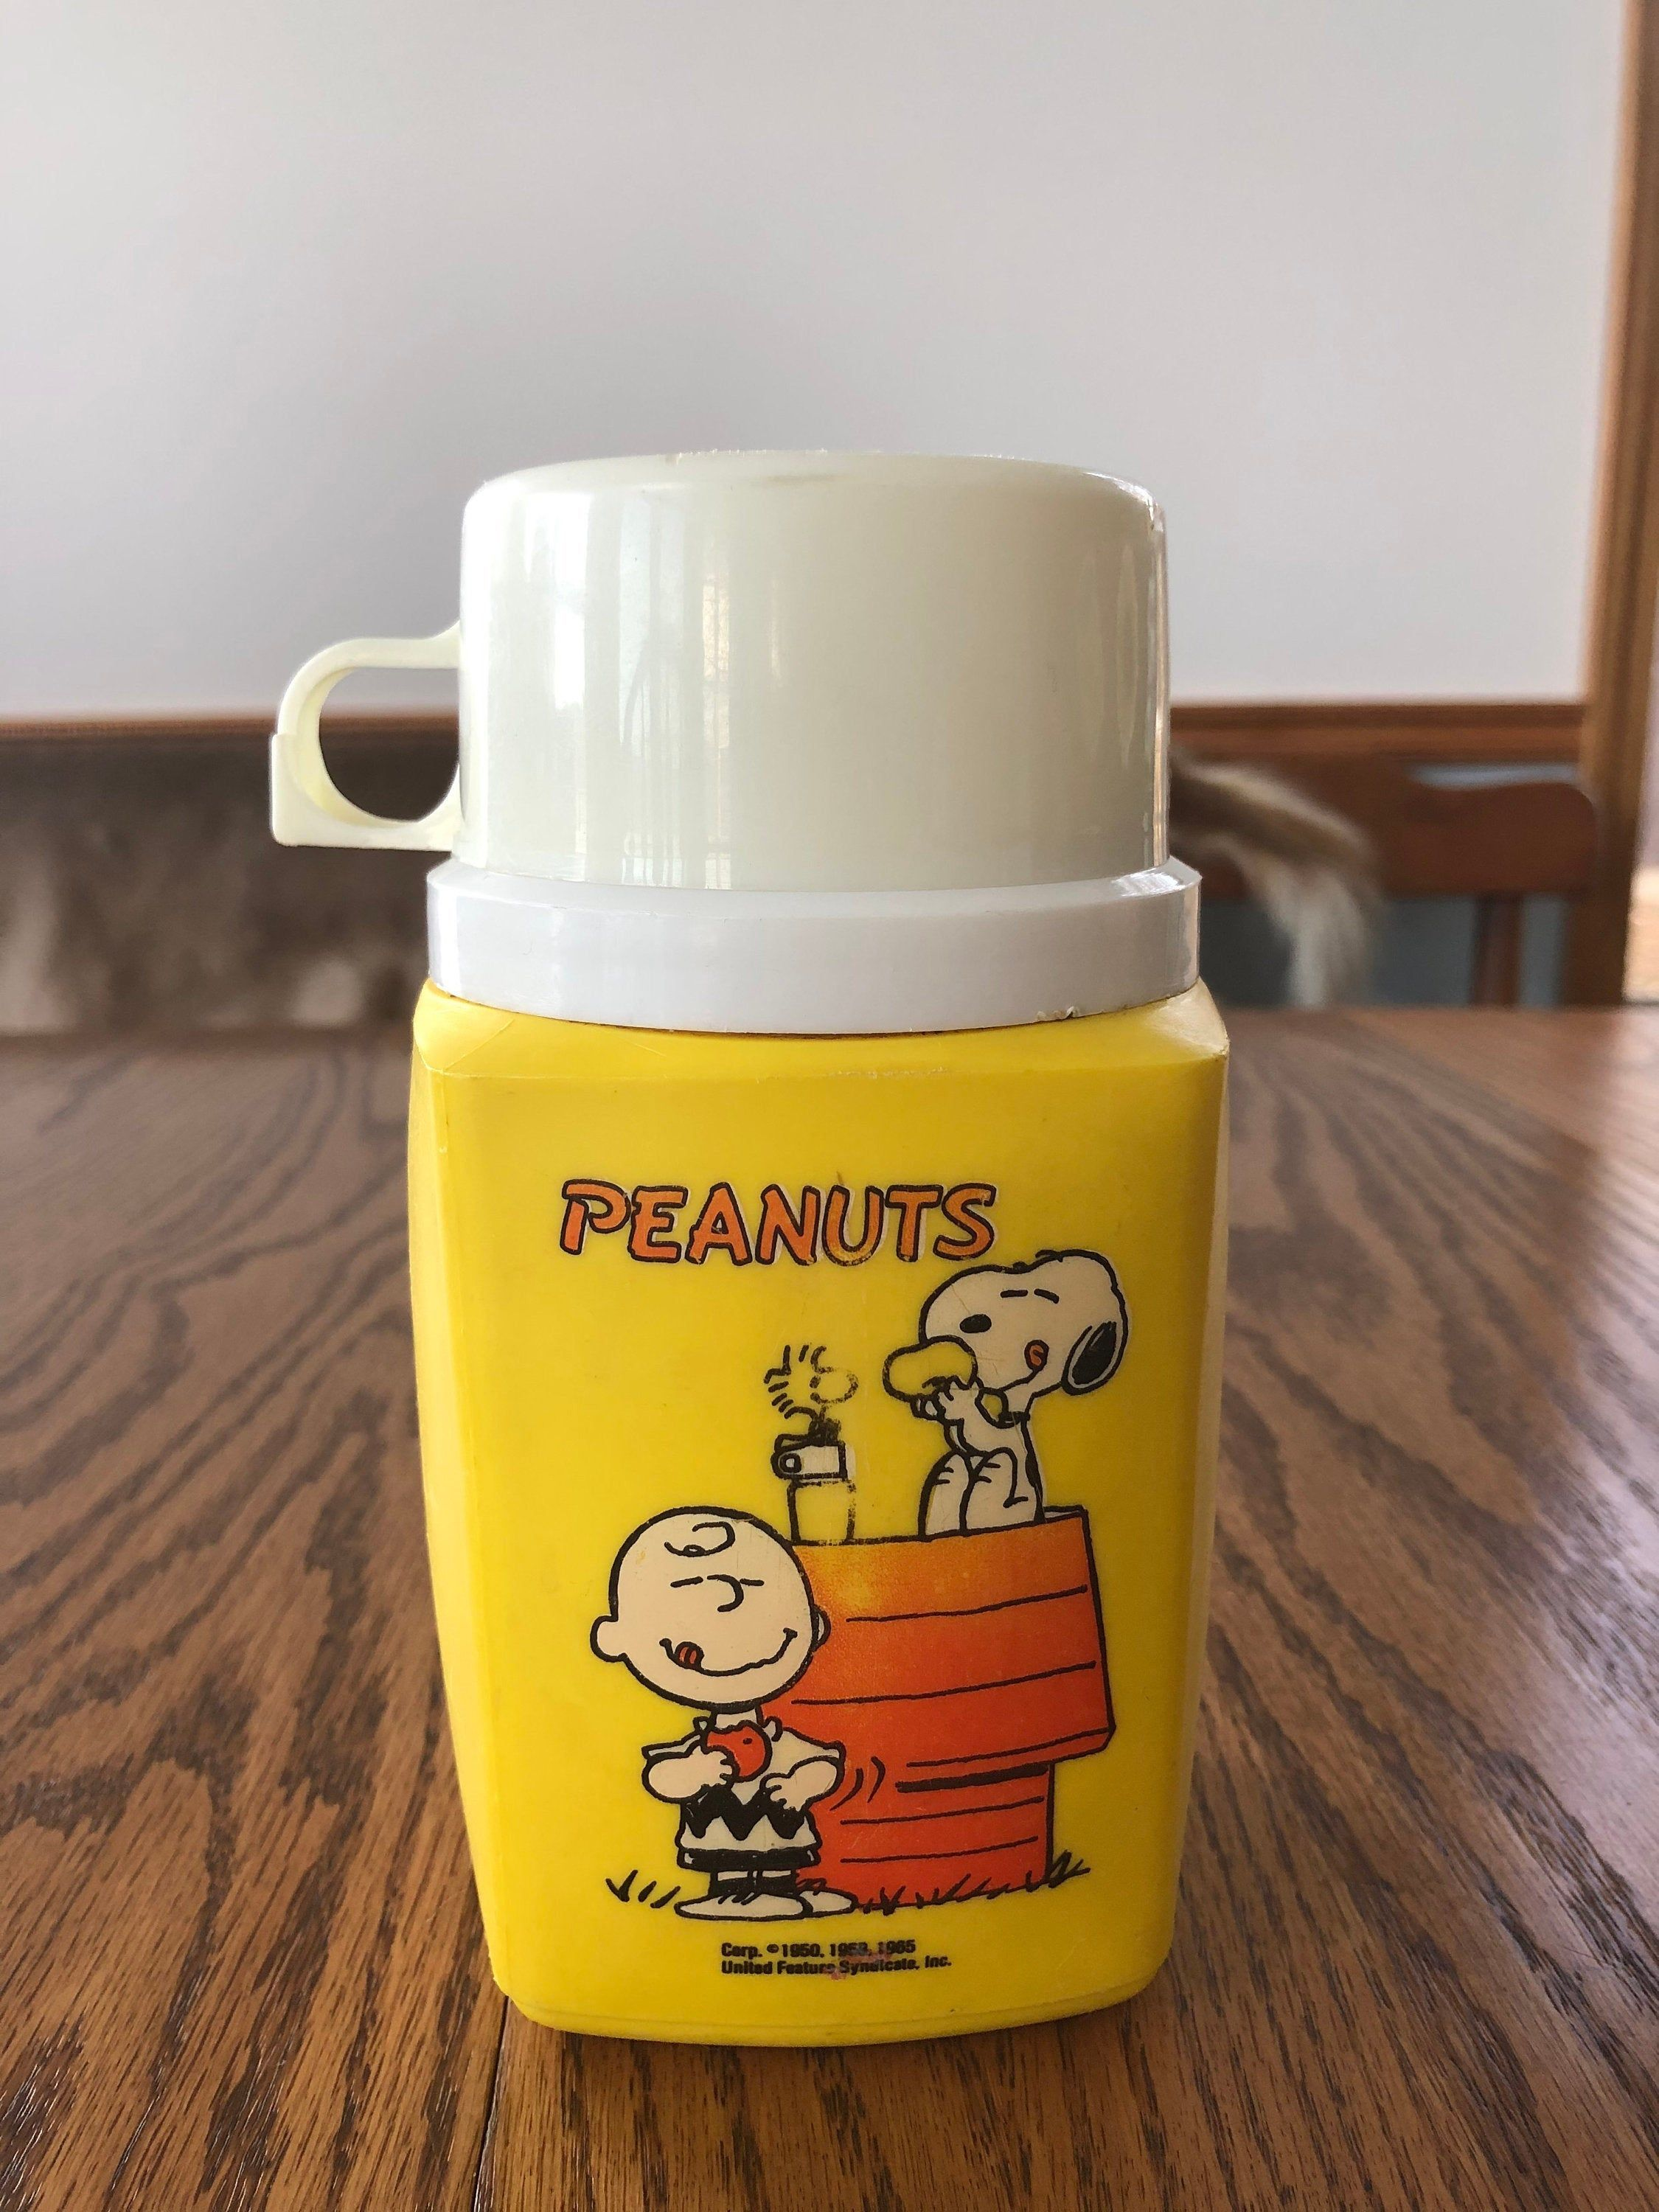 Vintage 1965 S Peanuts Thermos United Feature Syndicate Etsy In 2020 Vintage Lunch Boxes Thermos Lunch Box Thermos